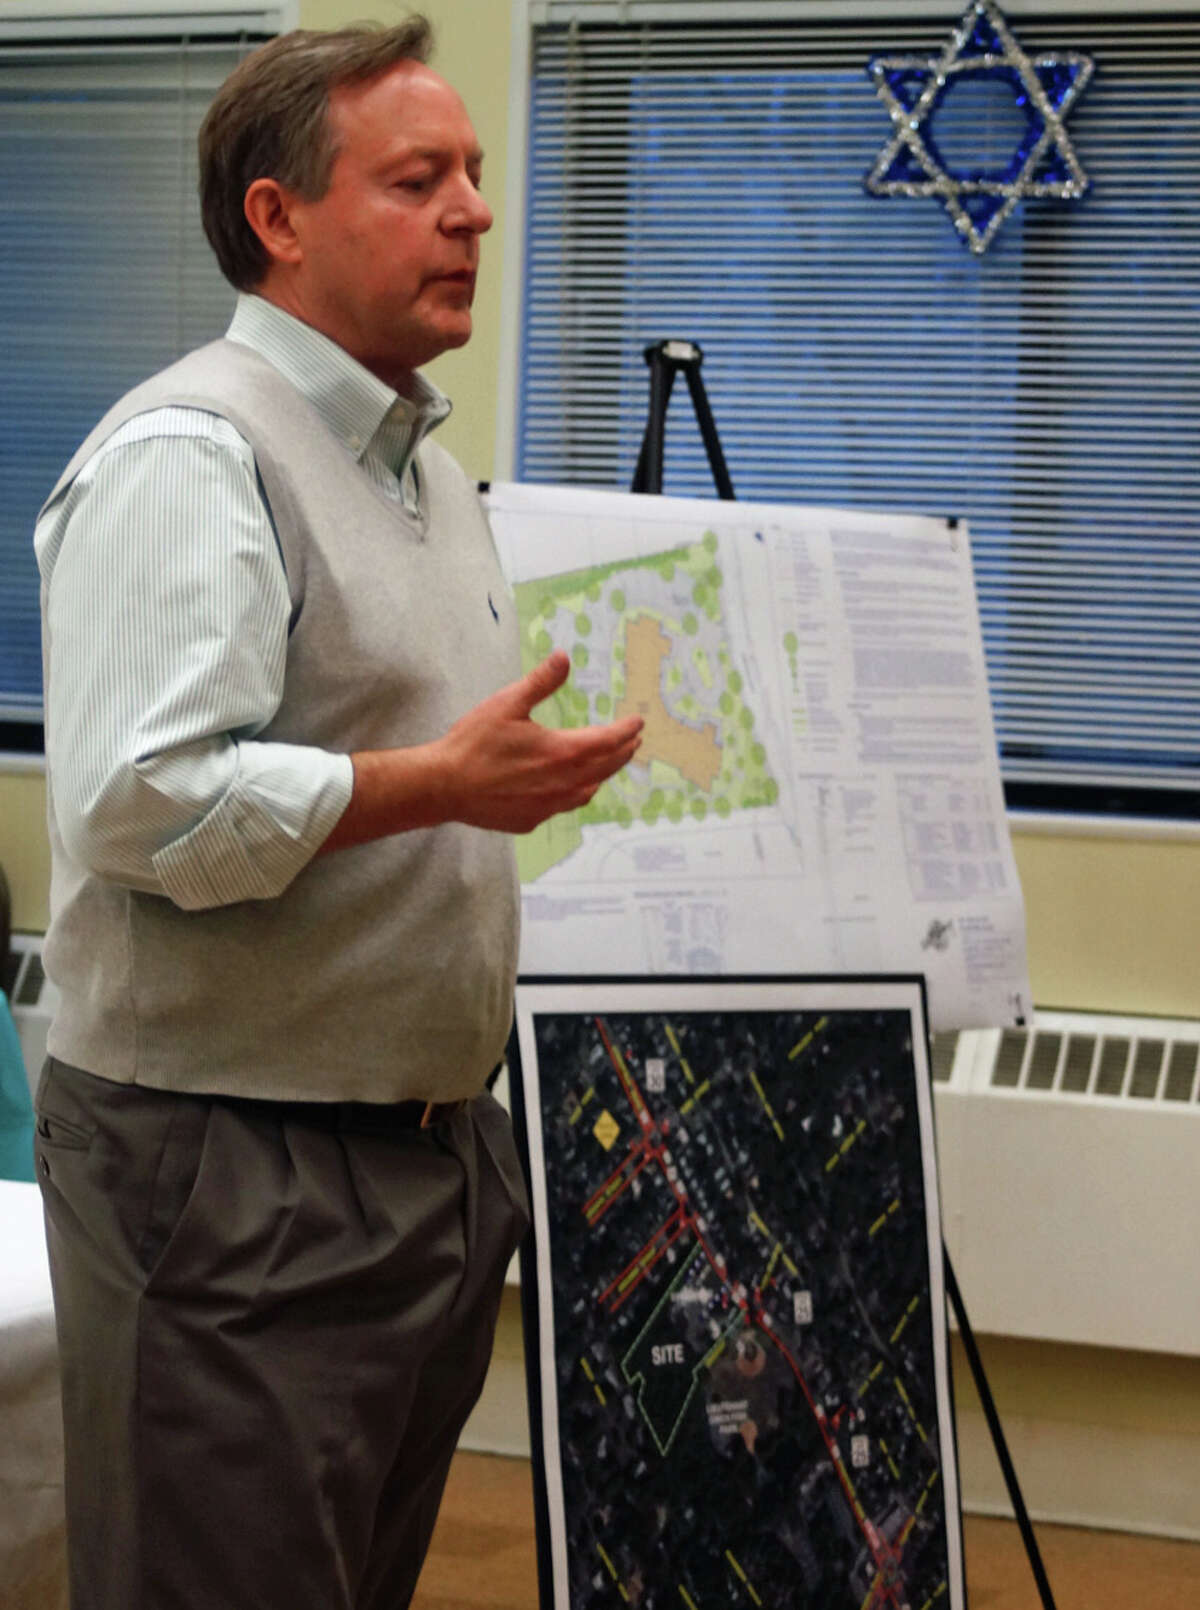 Mark DePecol, CEO of Senior Living Development, outlines plans for a proposed assisted living facility on Stratfield Road at a meeting with neighbors.